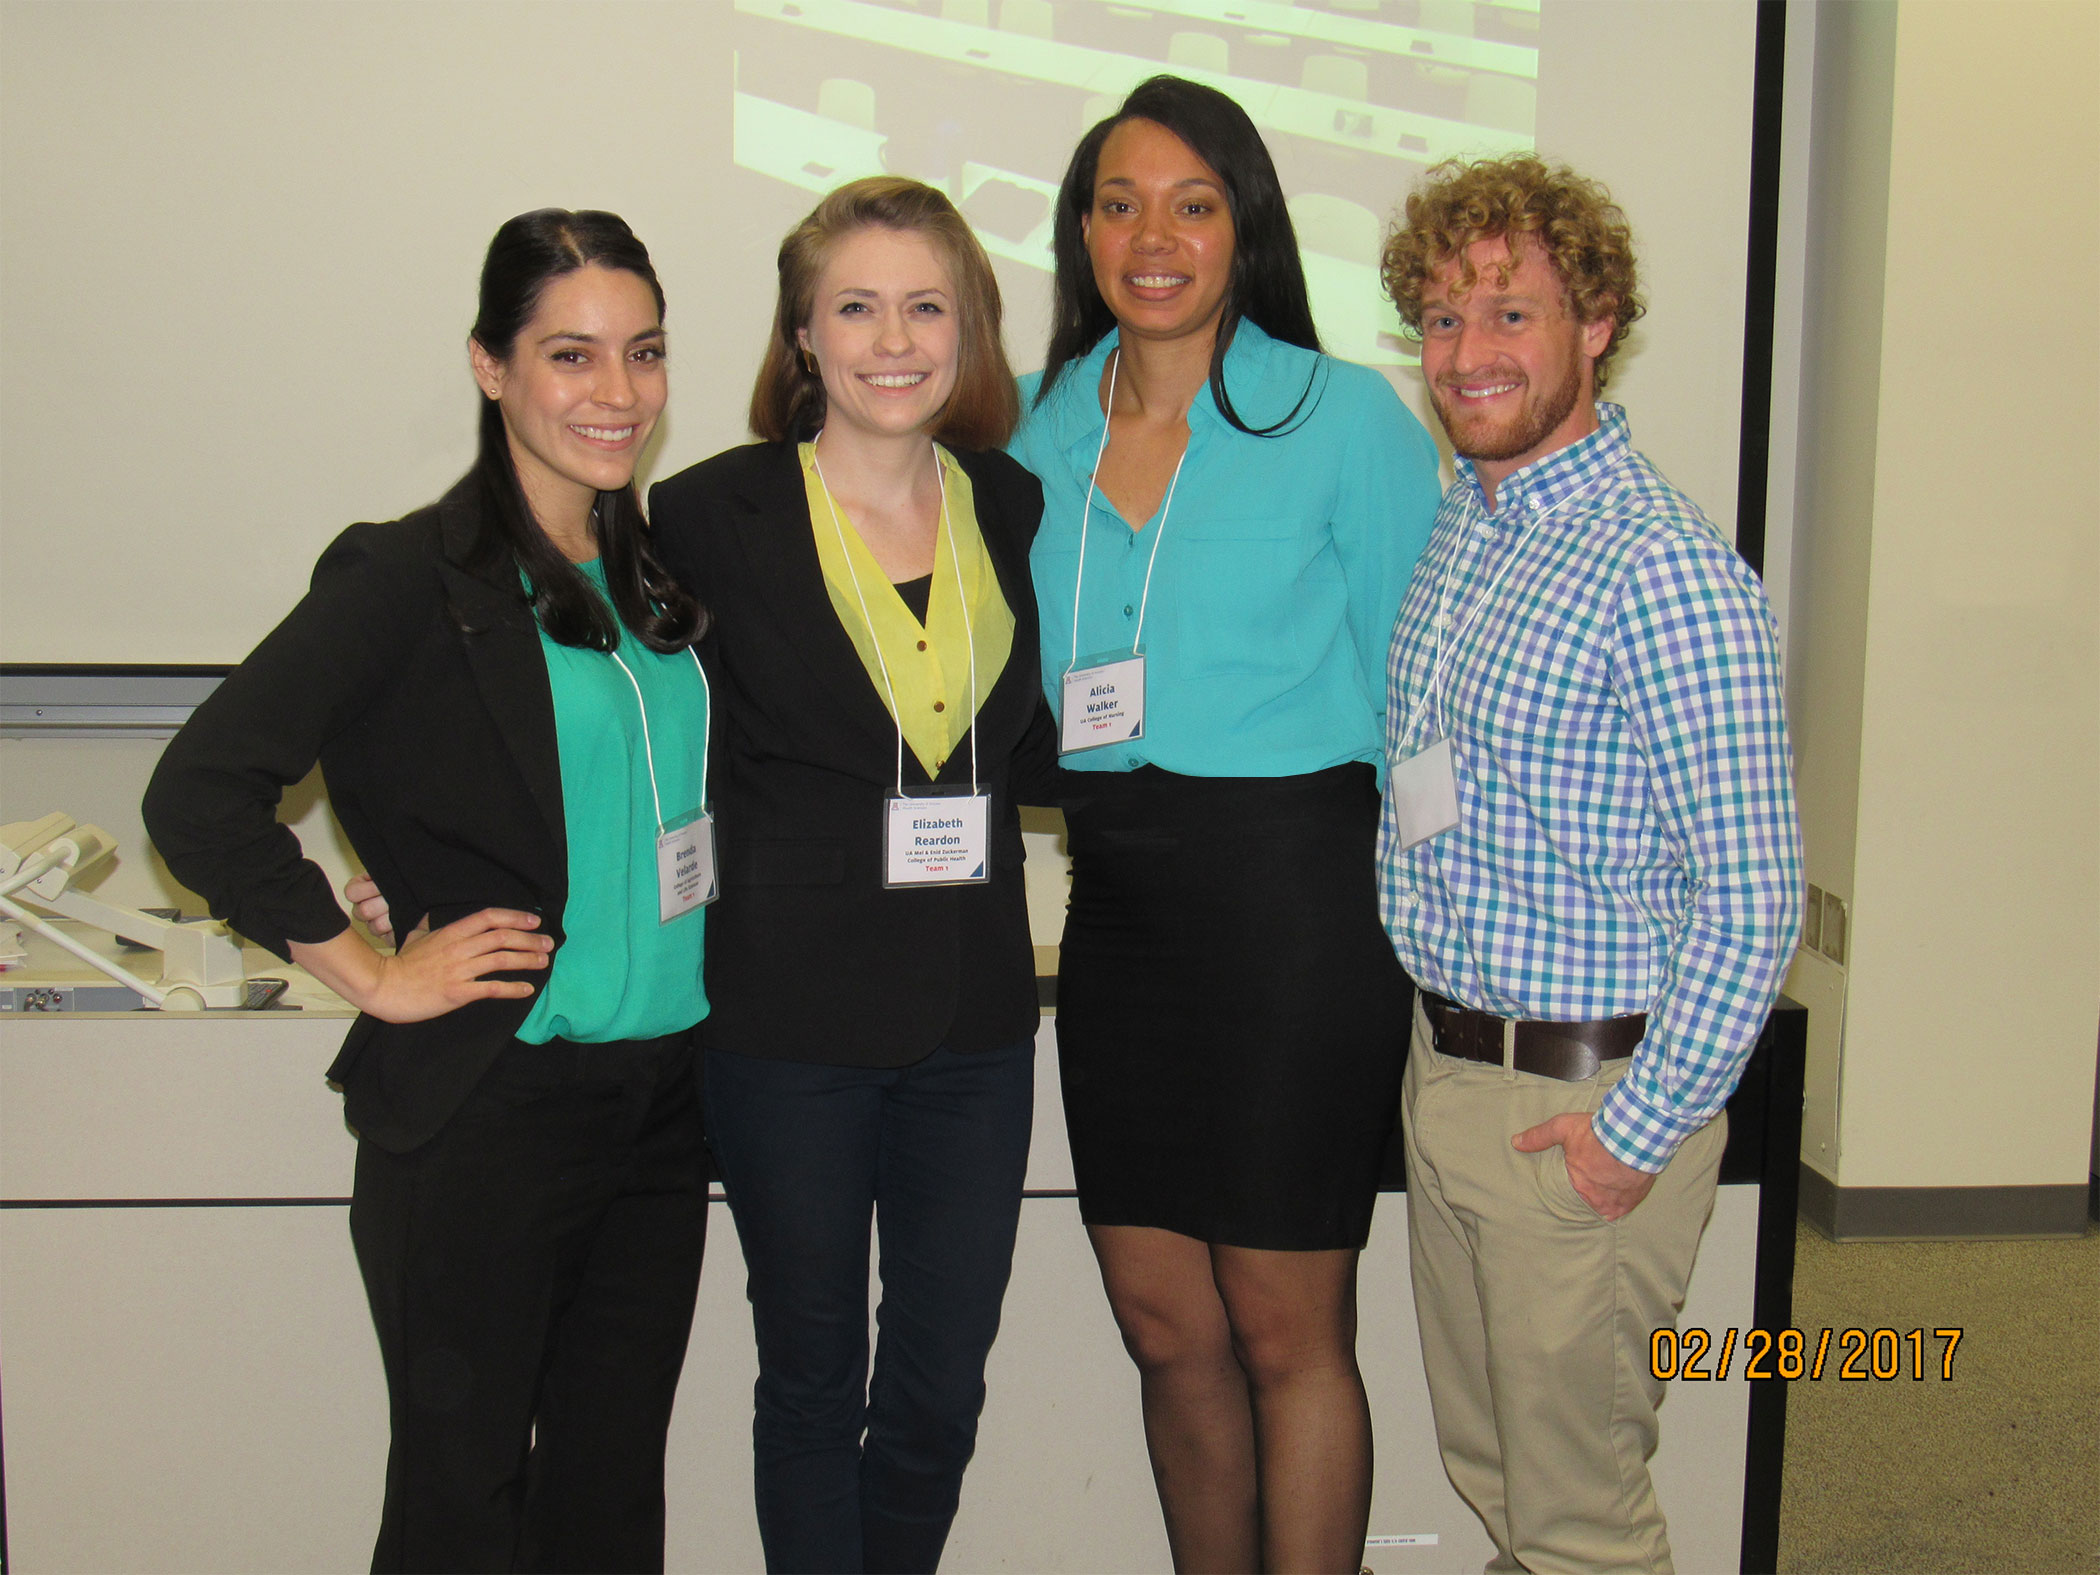 Winners of the UA local CLARION IPE competion, headed to MN for national competition.